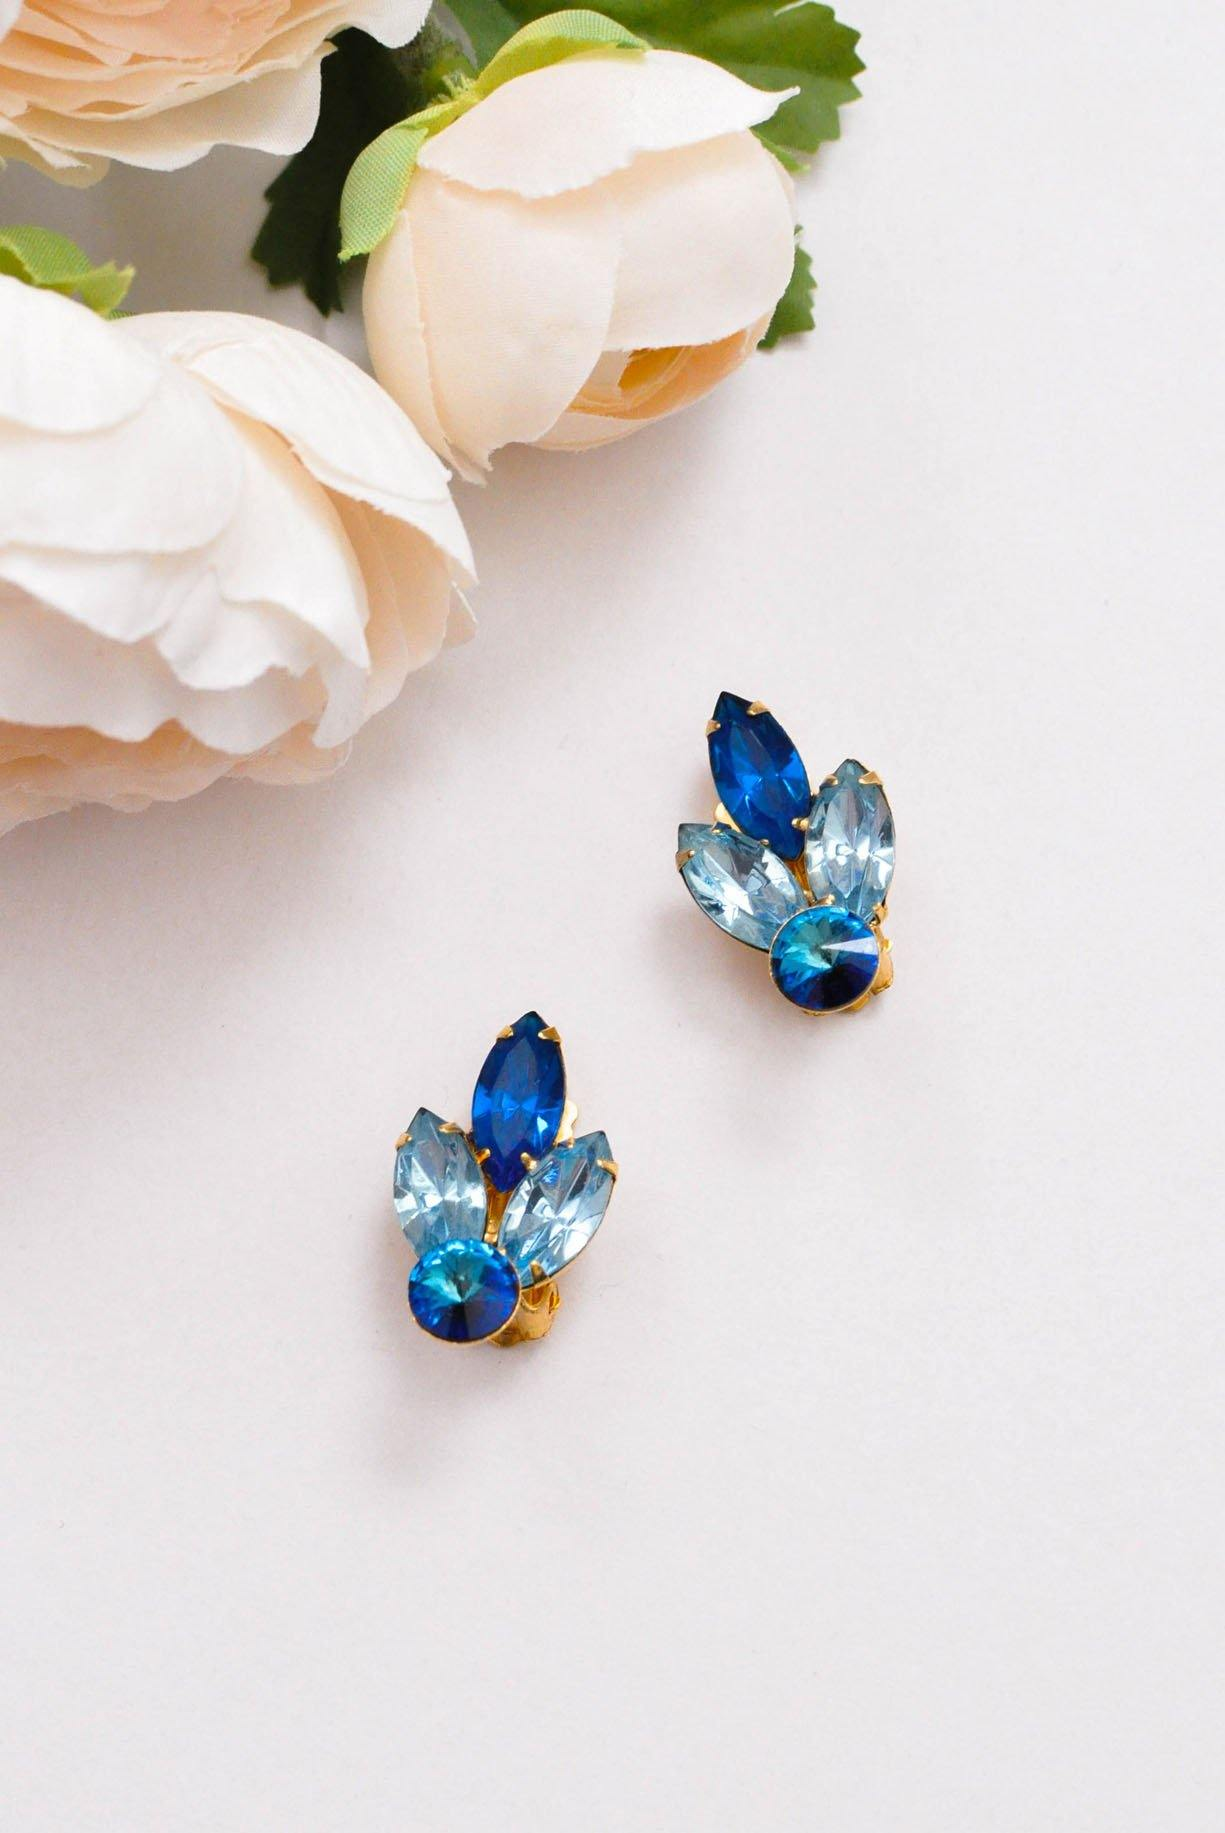 Blue rhinestone clip-on earrings.